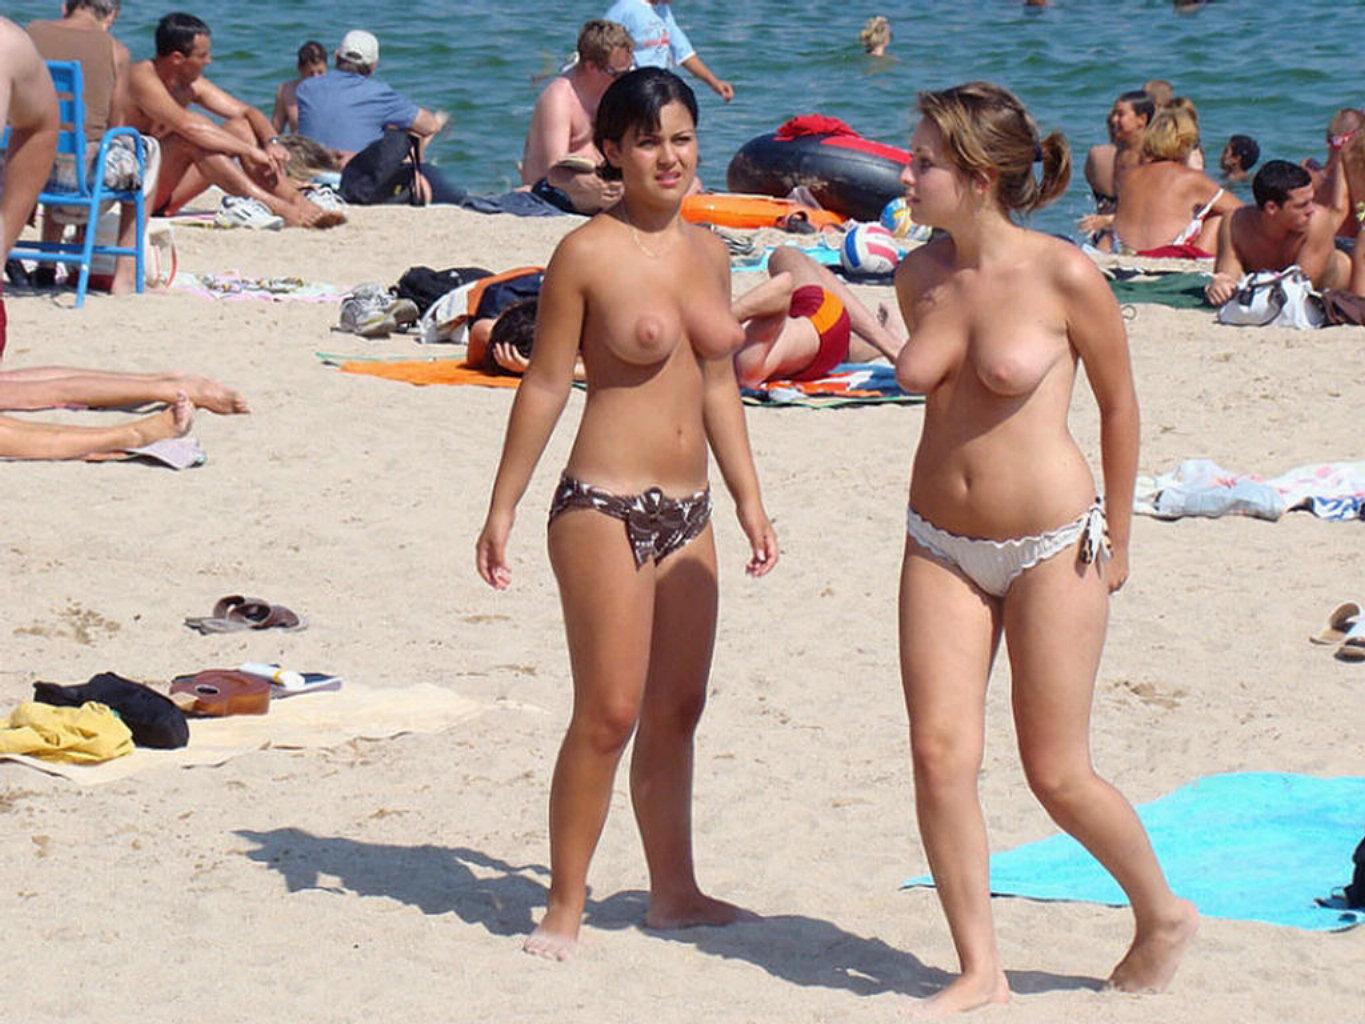 Candid Topless or Nude Beach Photos | Pounding My Busty White